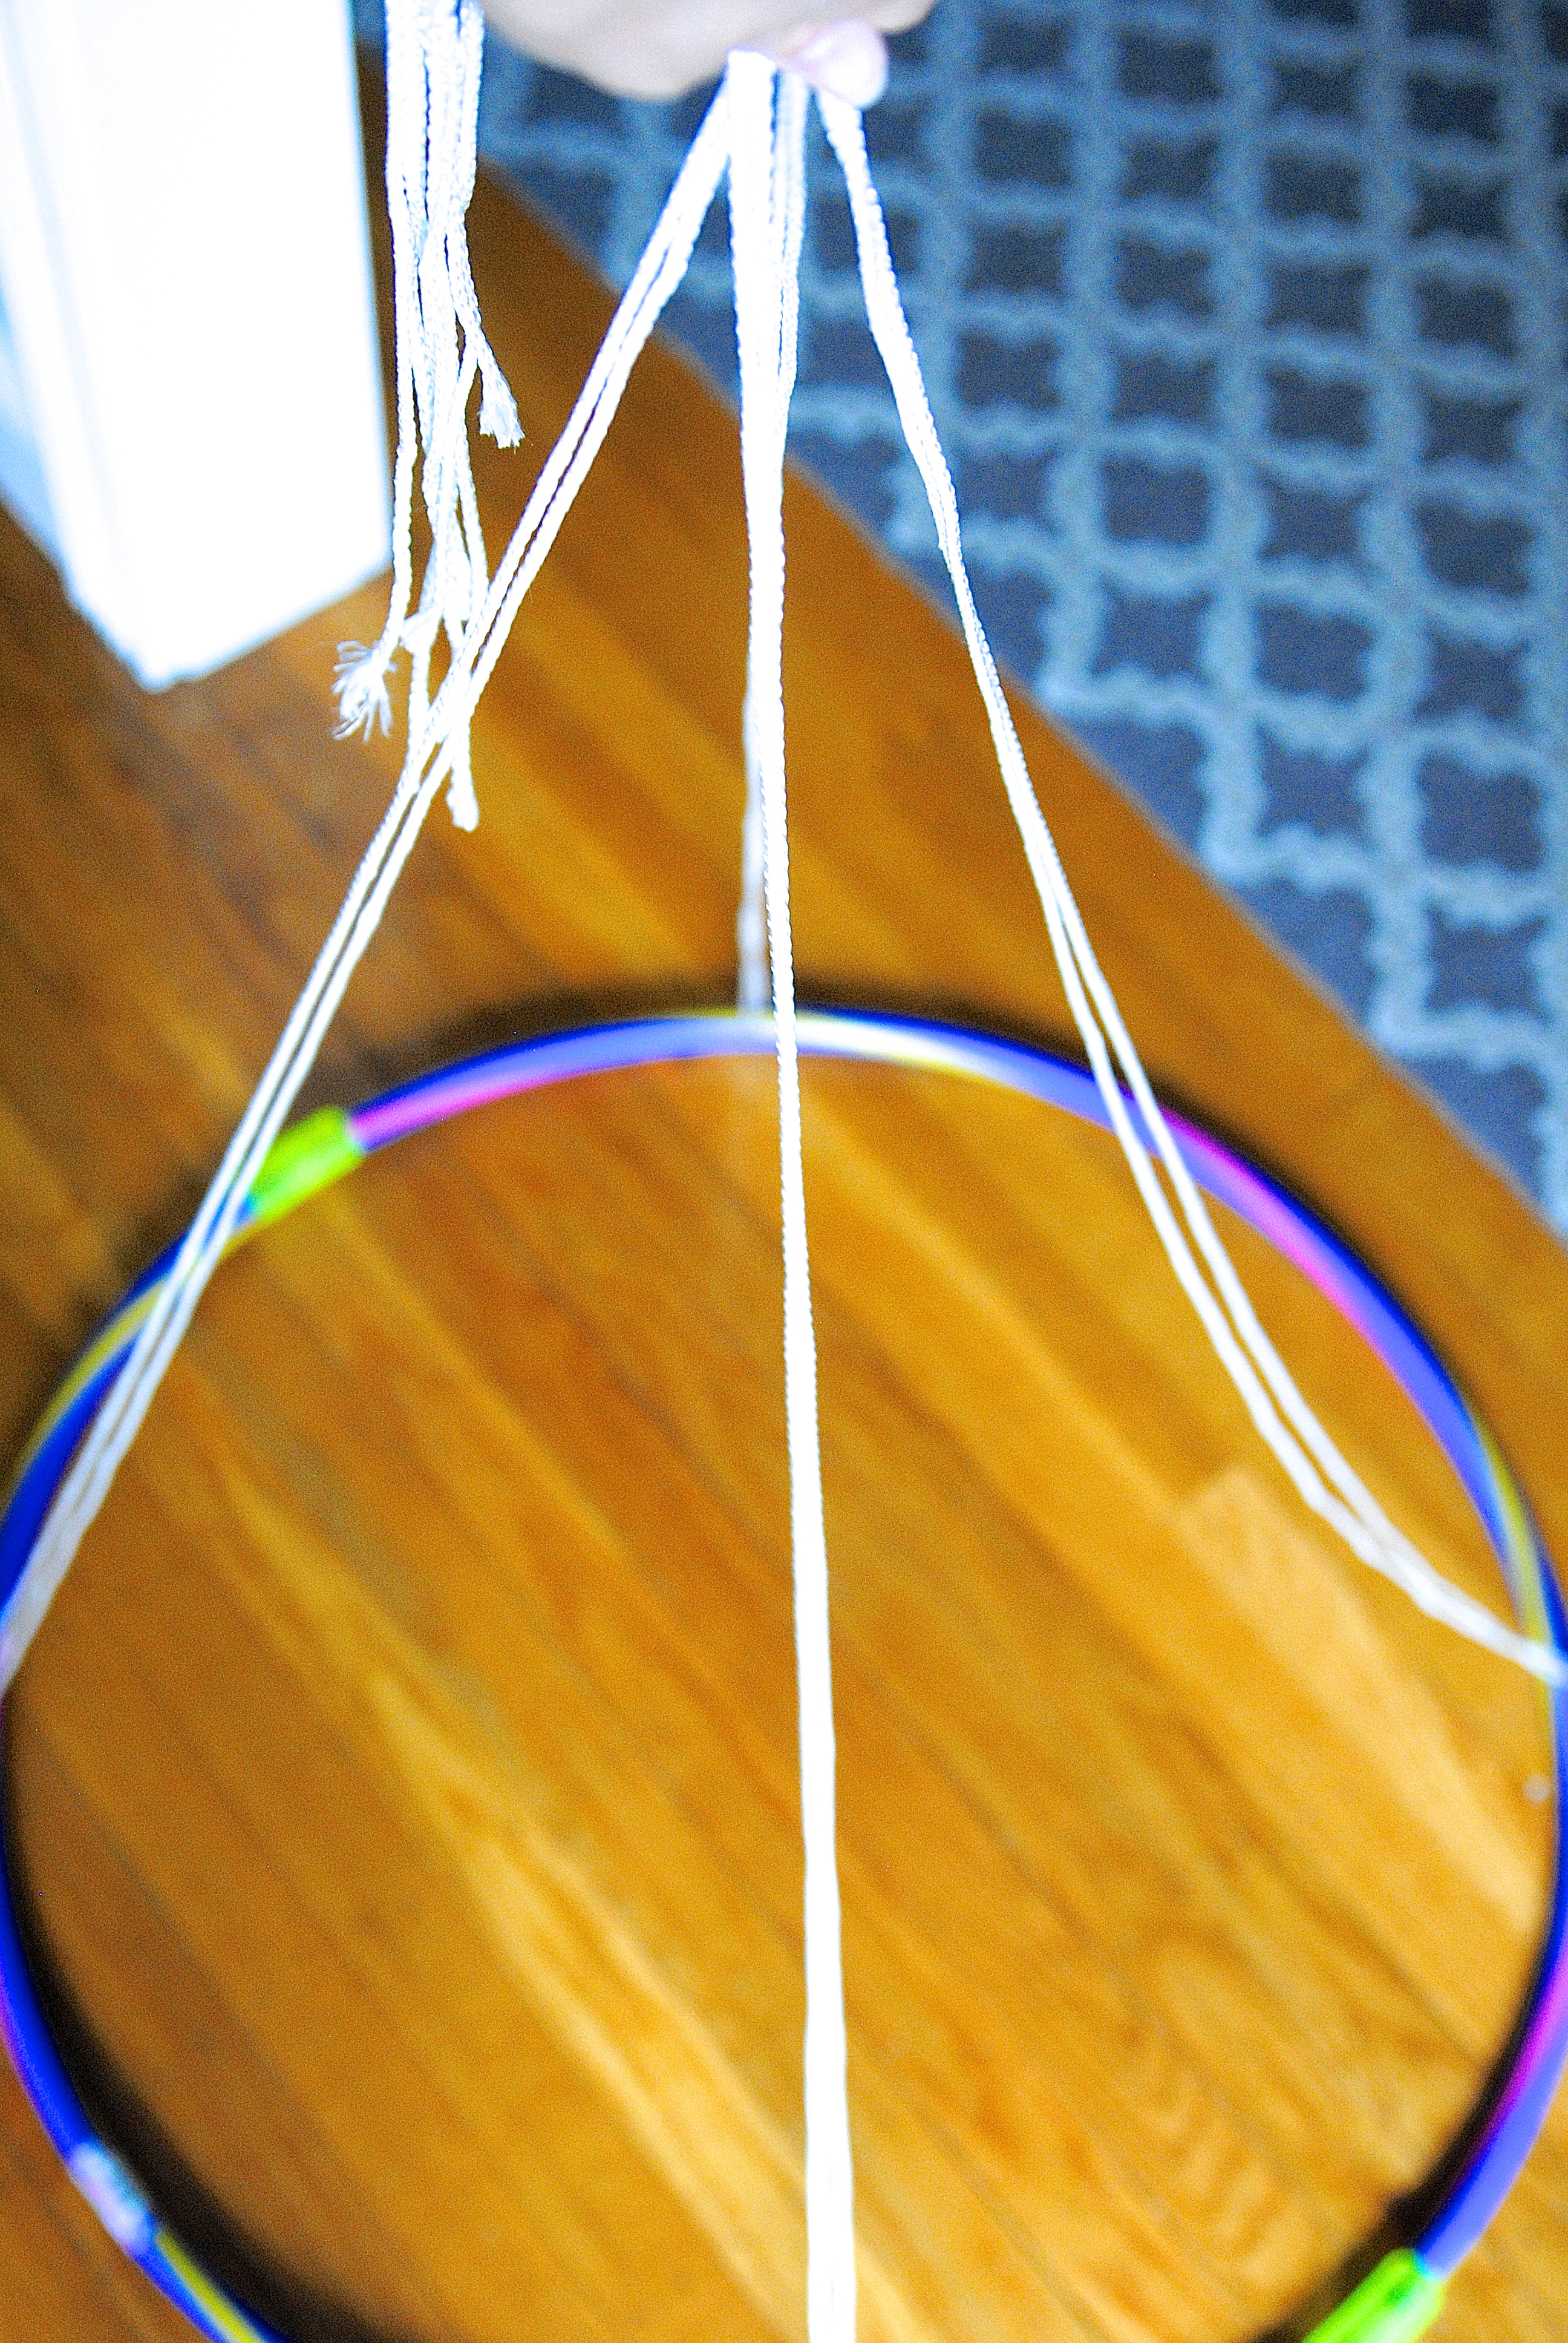 Make A Diy No Sew Kids Play Canopy Tent In An Hour